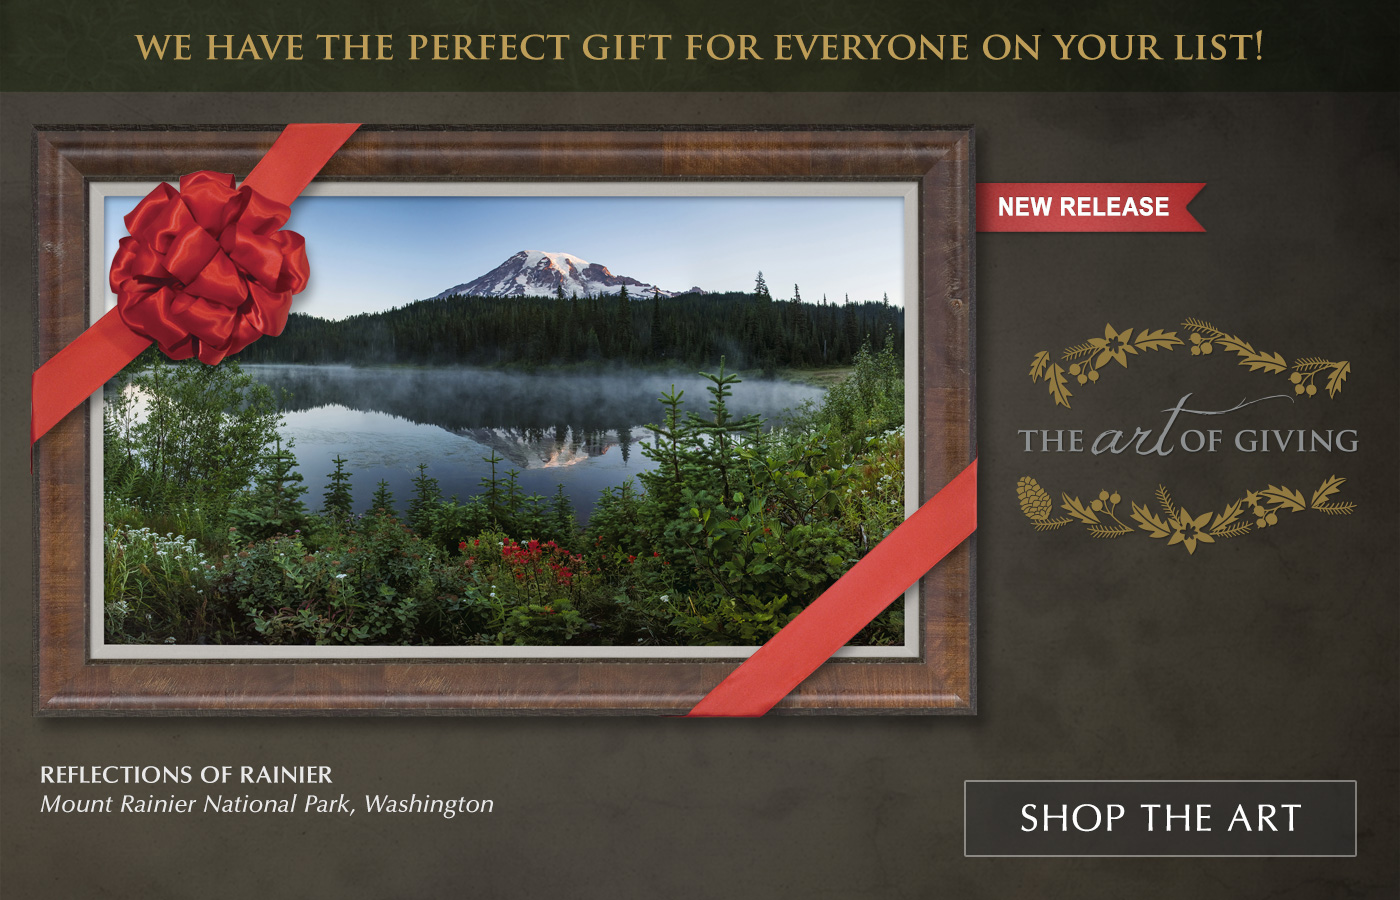 New Release image titled Reflections of Rainier